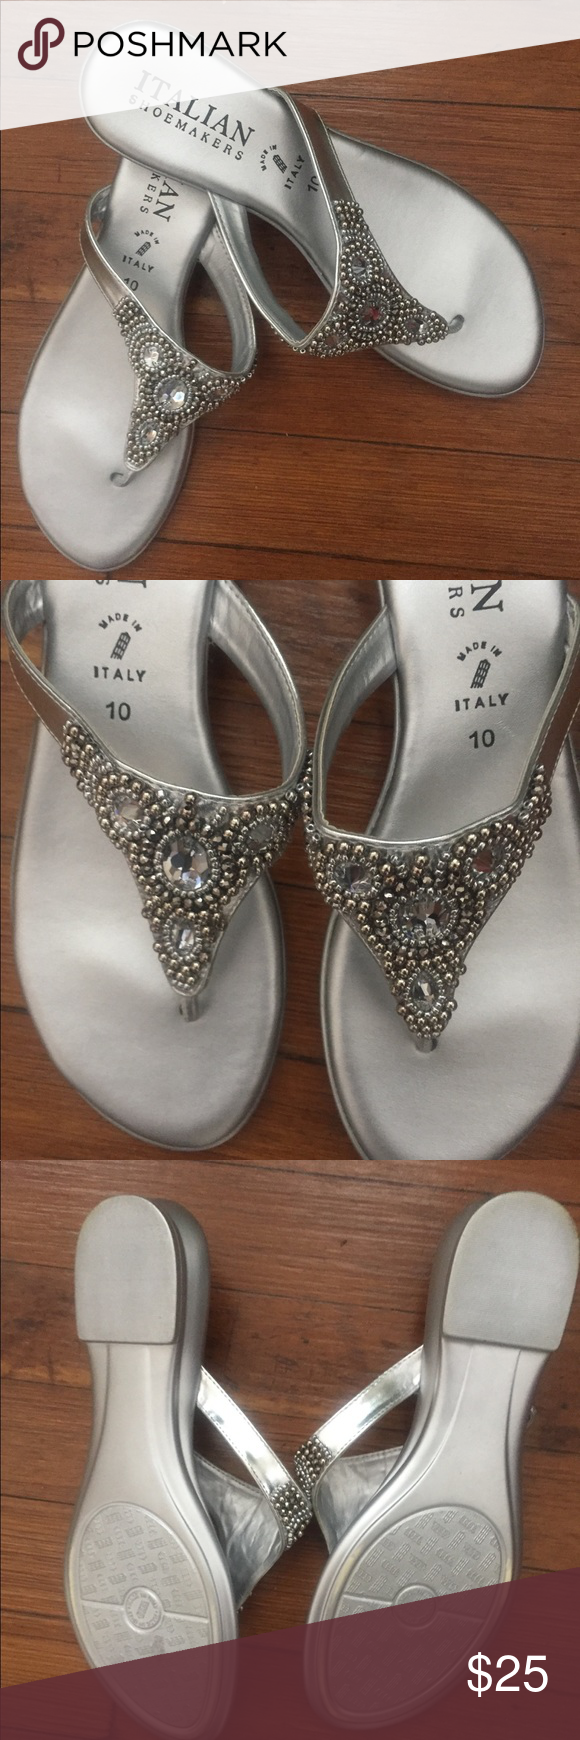 "f9ad12ed6e11 EUC Italian Shoemakers Mystify sandals. Size 10 Beautiful silver jeweled  sandals. 1"" heel. Never worn outside. Made in Italy."